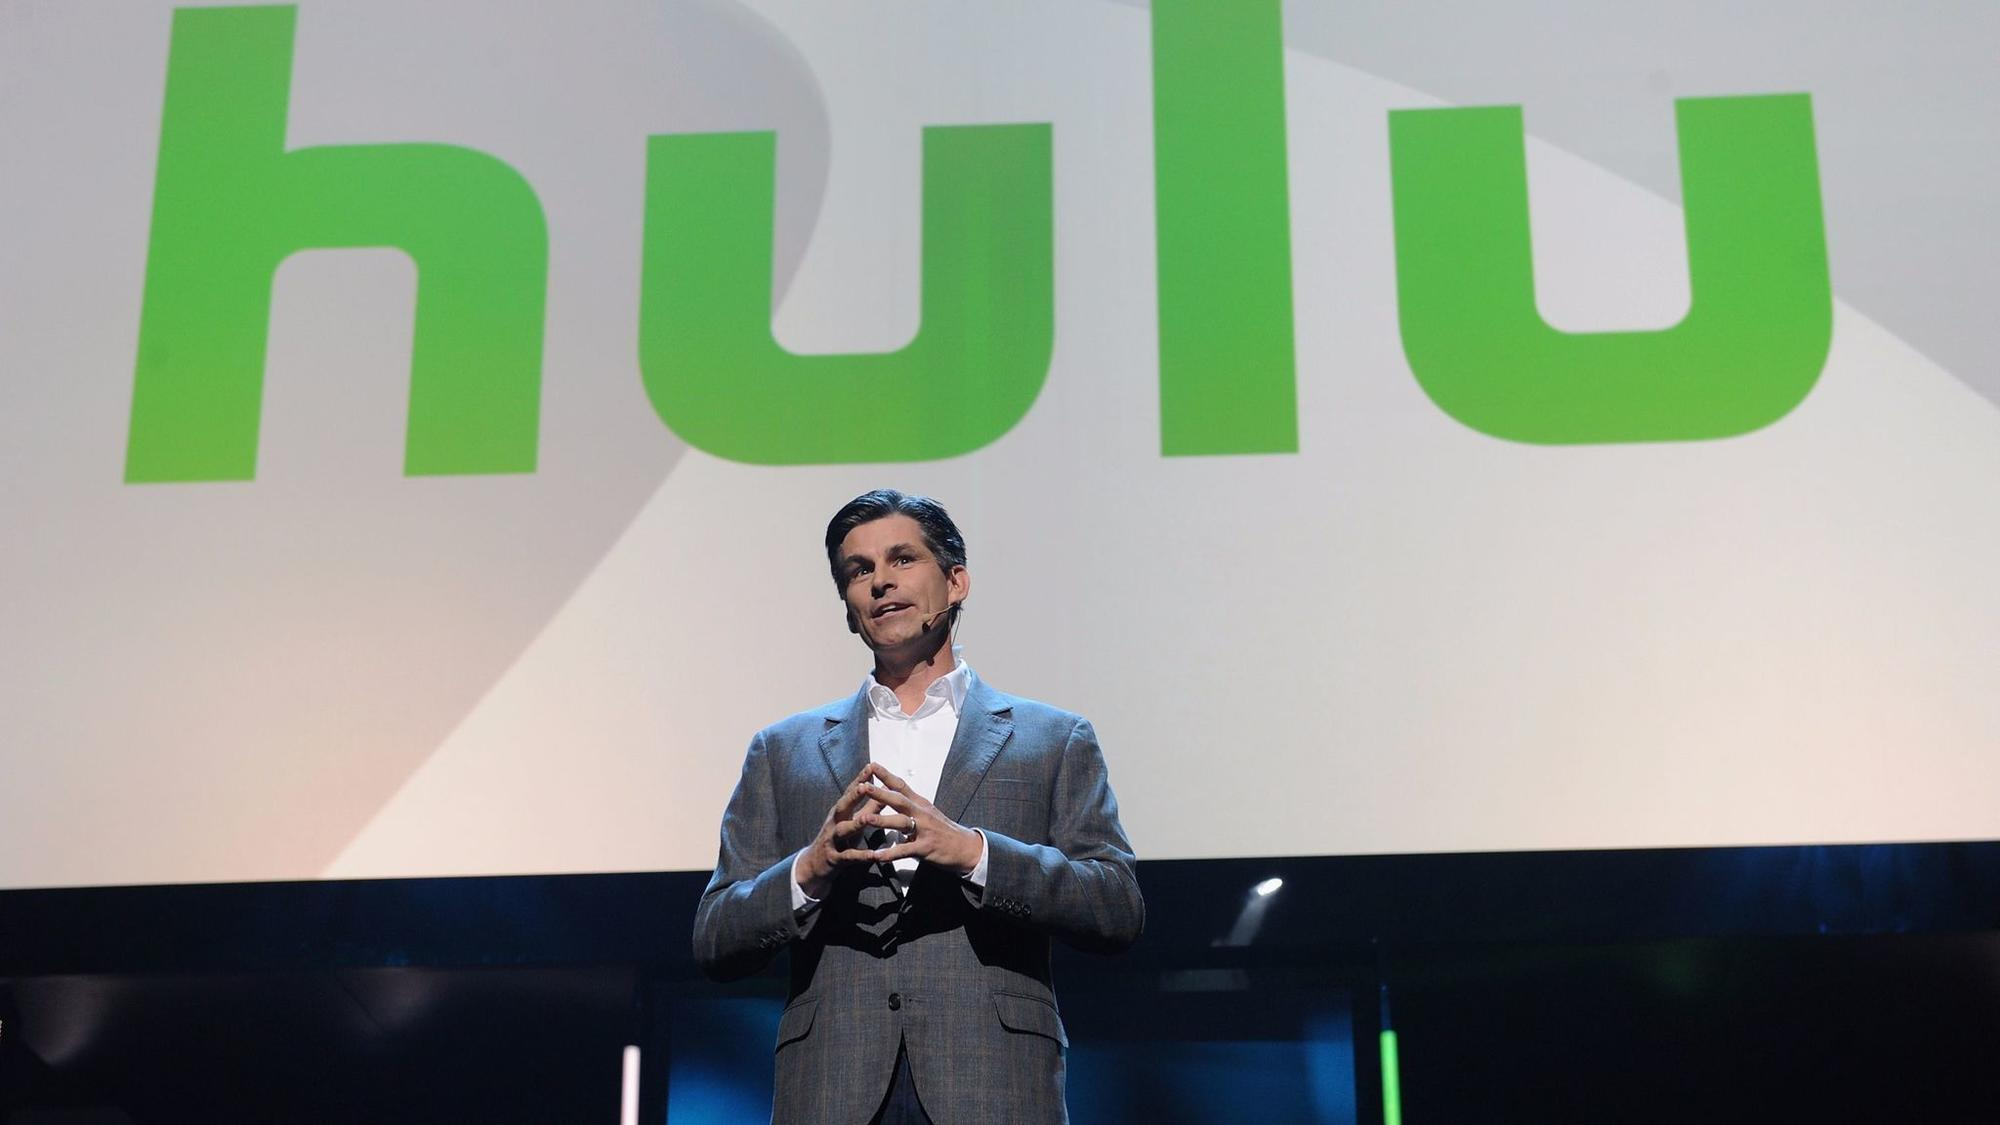 Randy Freer is named CEO of Hulu as Mike Hopkins moves to Sony Pictures Entertainment